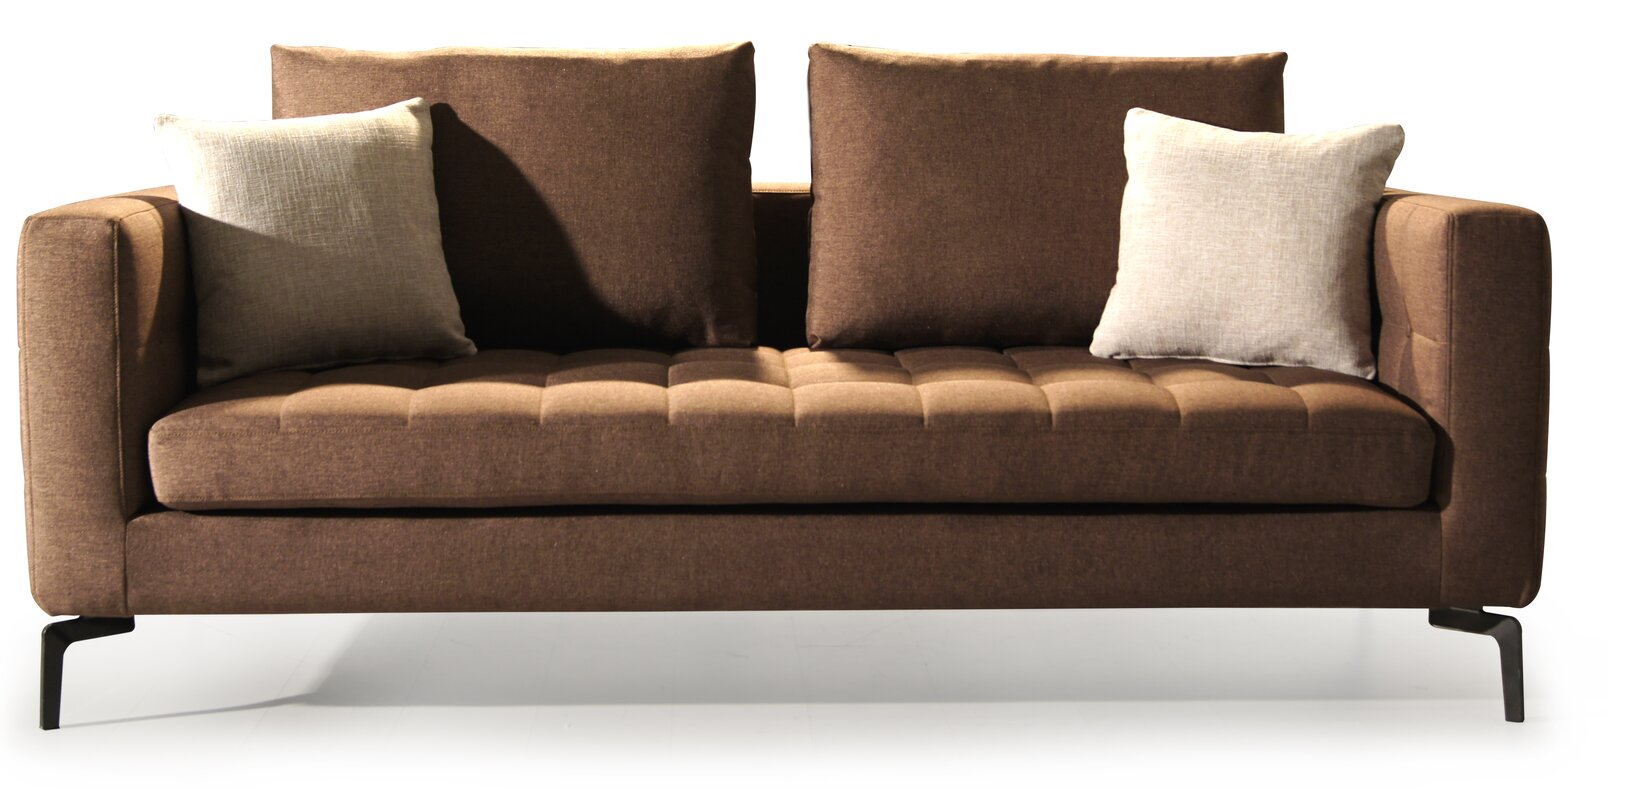 Square Couch Gorgeous Modern Design International Square Chesterfield Sofa  Wayfair Decorating Inspiration